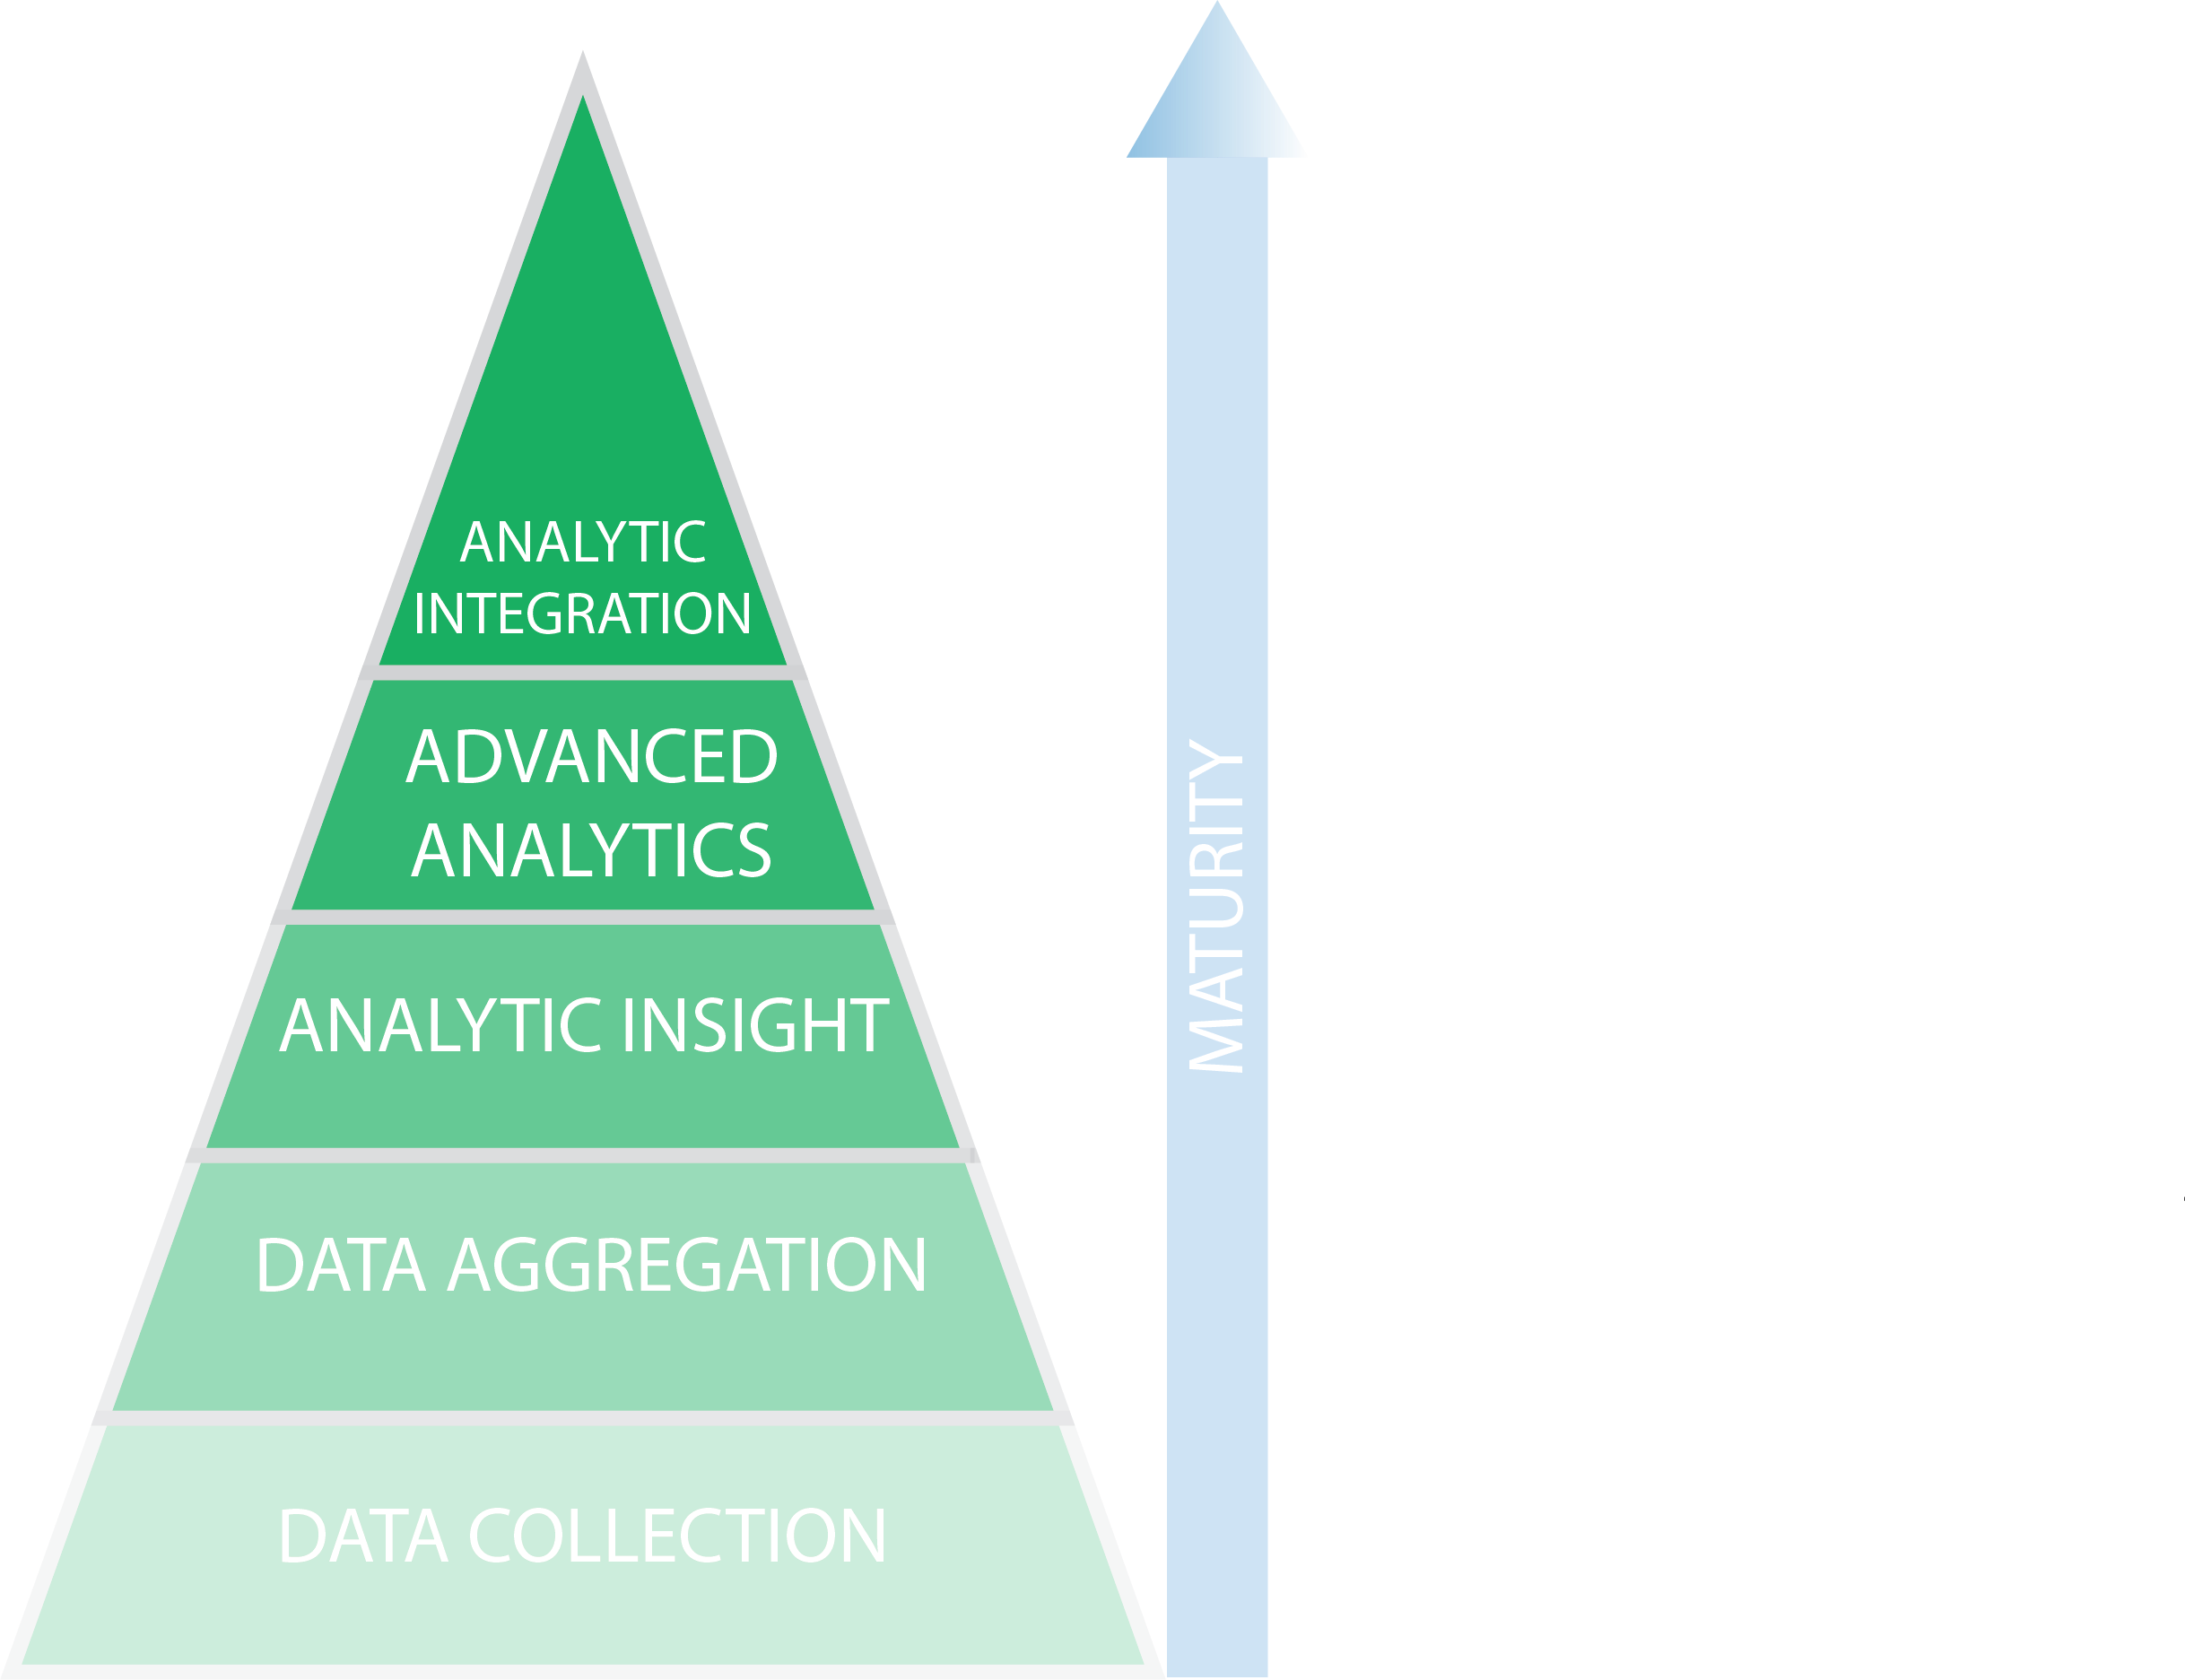 data science stage 5 - analytic integration